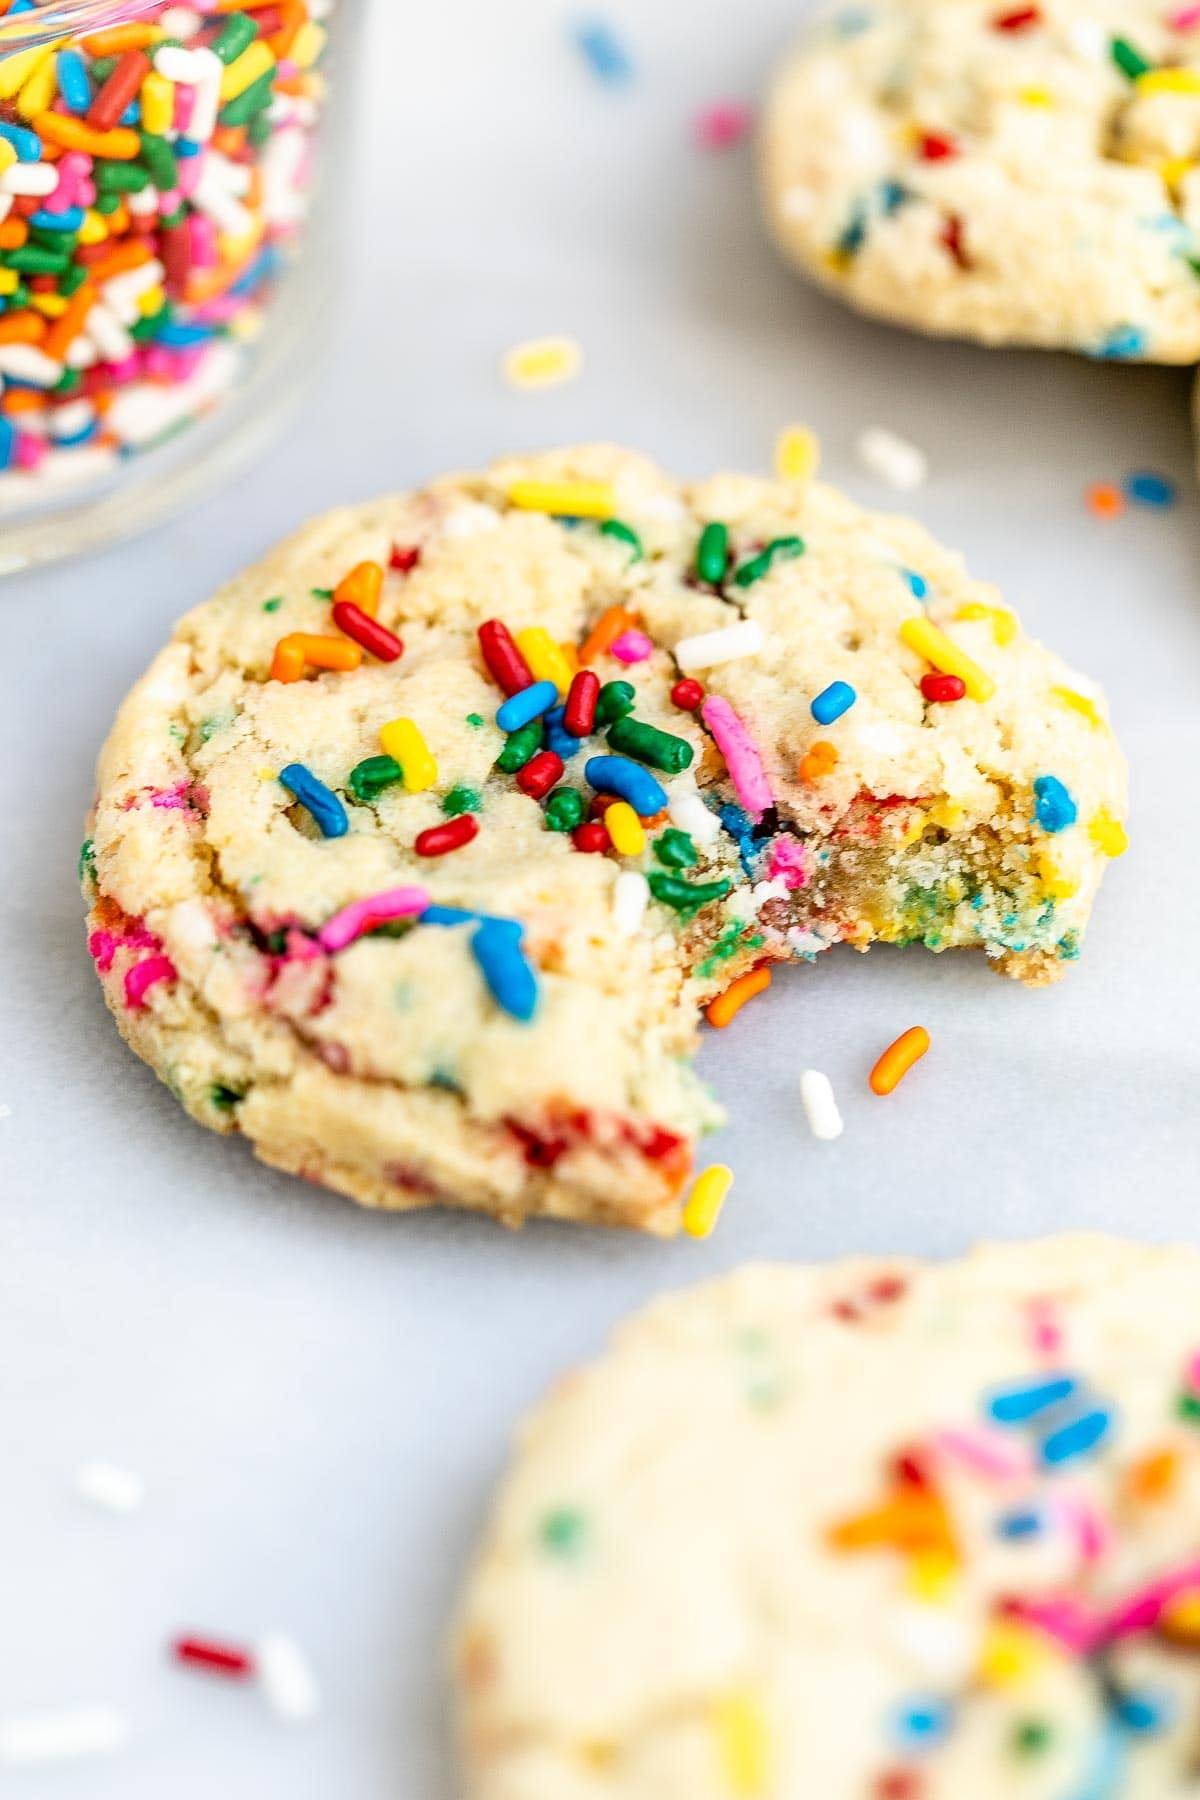 Up close image of a funfetti cookie to show the texture.